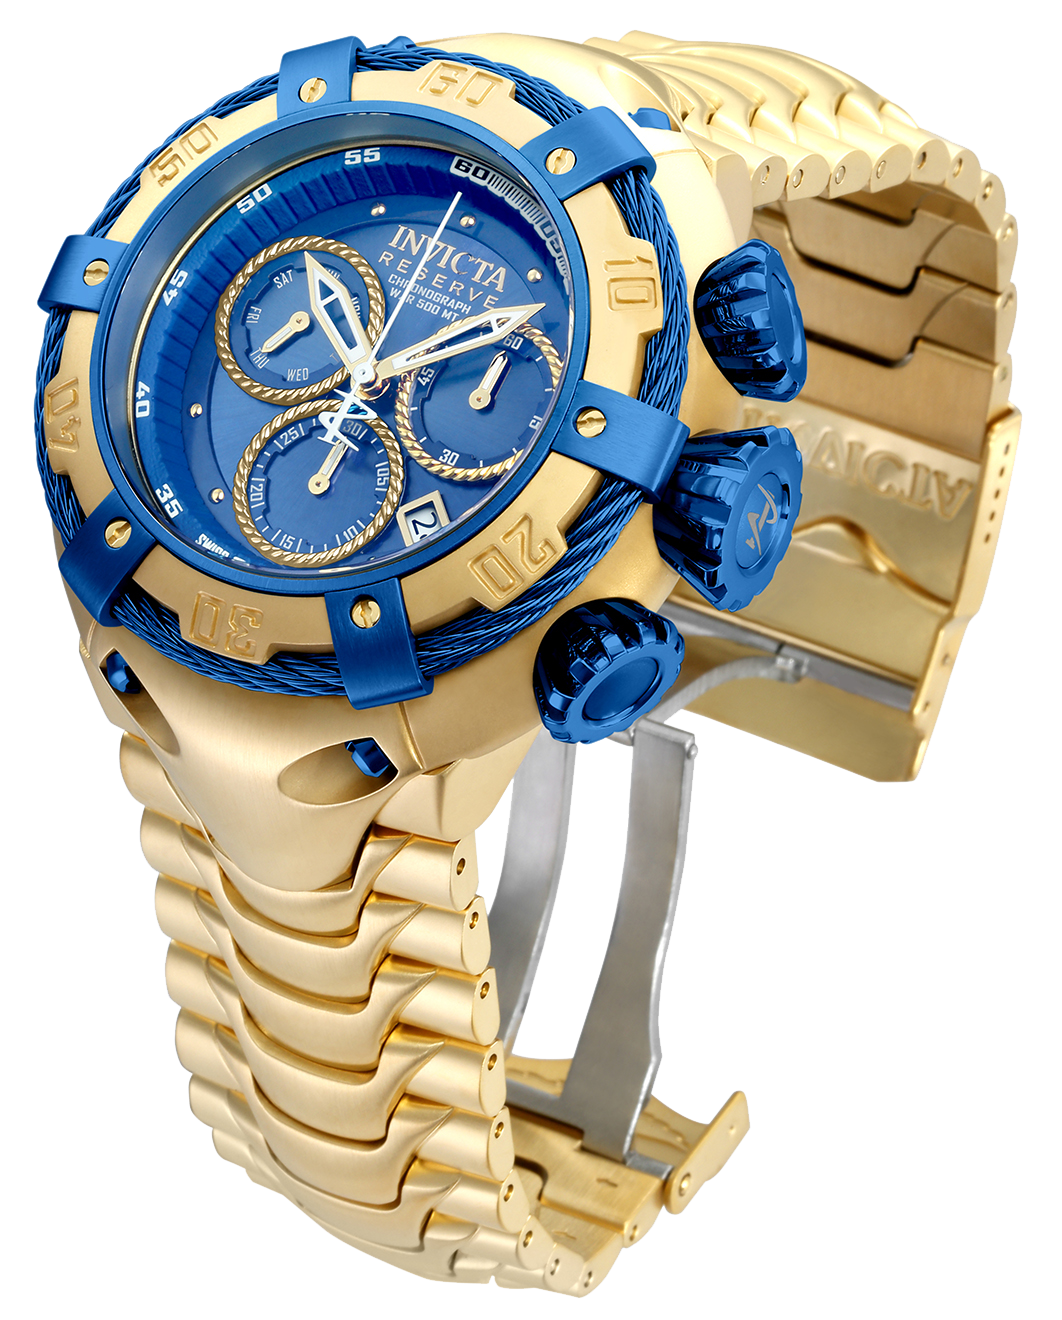 dd02c5f724c INVICTA BOLT SWISS MADE QUARTZ WATCH - GOLD, BLUE CASE WITH GOLD TONE  STAINLESS STEEL BAND - MODEL 21347 #goldwatches #invictawatches  #boltcollection # ...